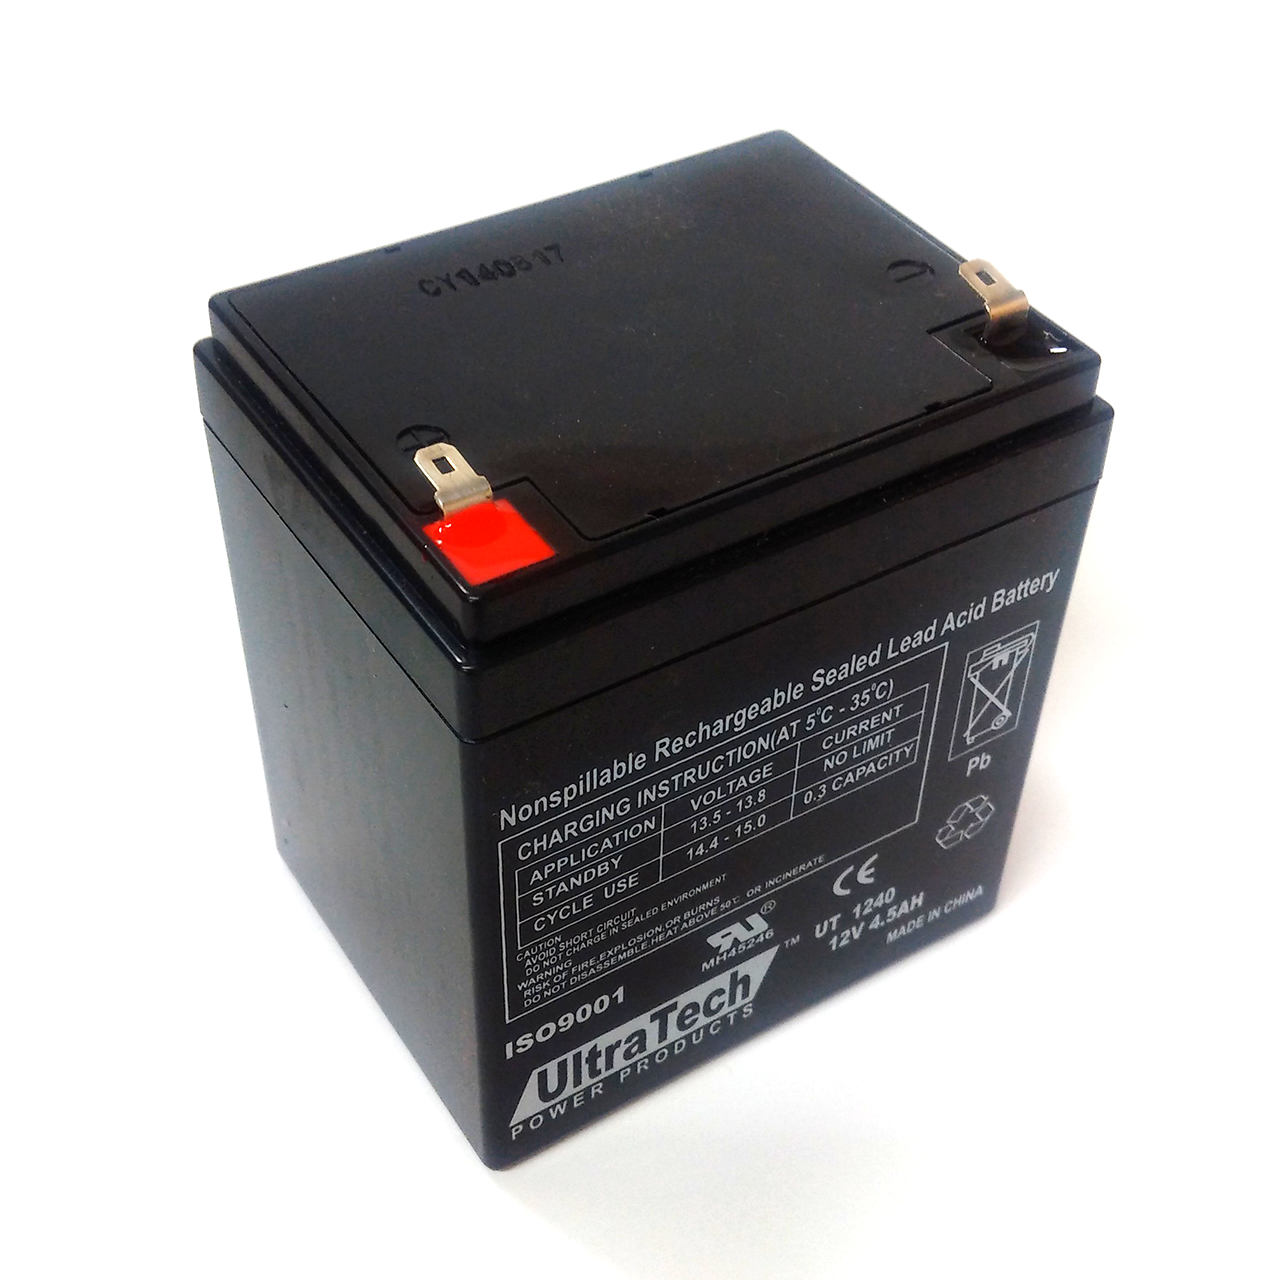 Battery for alarm system 17